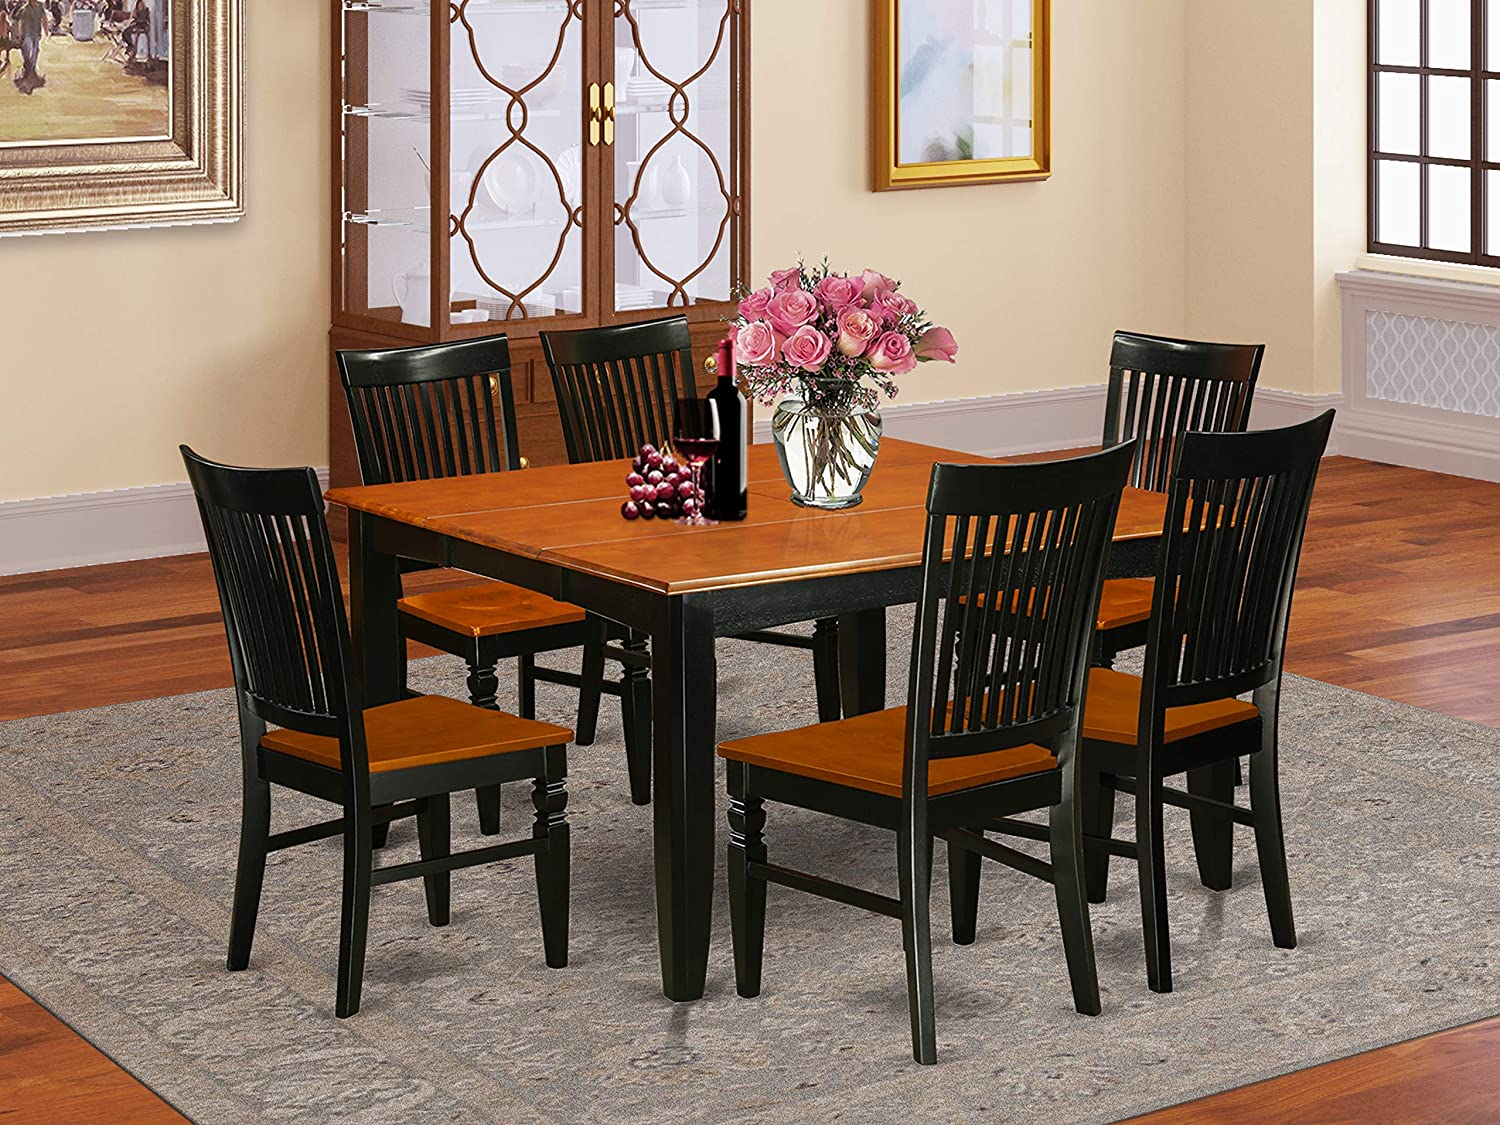 7 Pc Kitchen table set with 2021 Table Fort Worth Mall Dining a and 6 Chairs